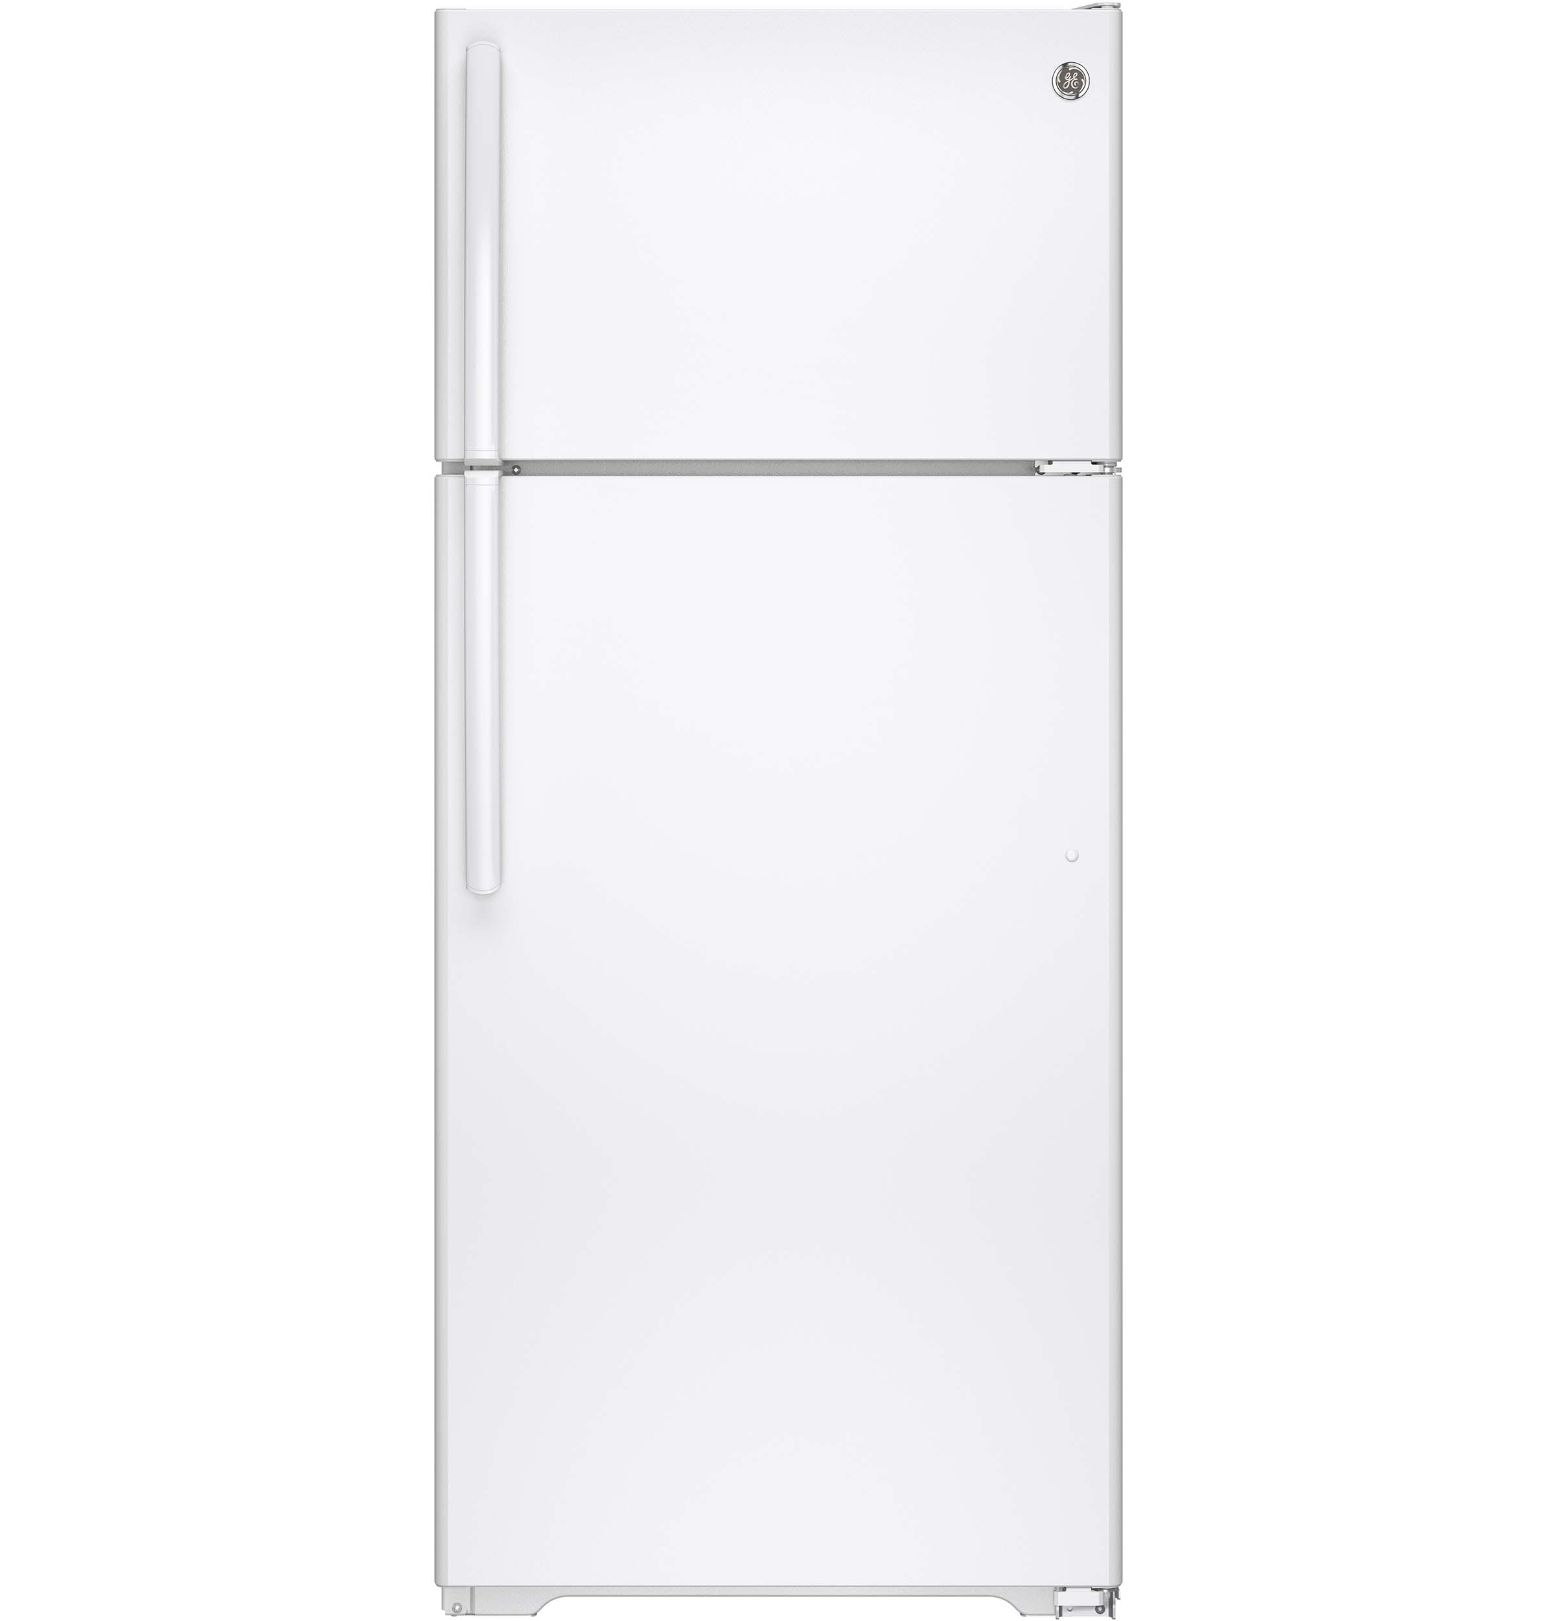 GE ENERGY STAR 15.5 Cu. Ft. Top-Freezer Refrigerator